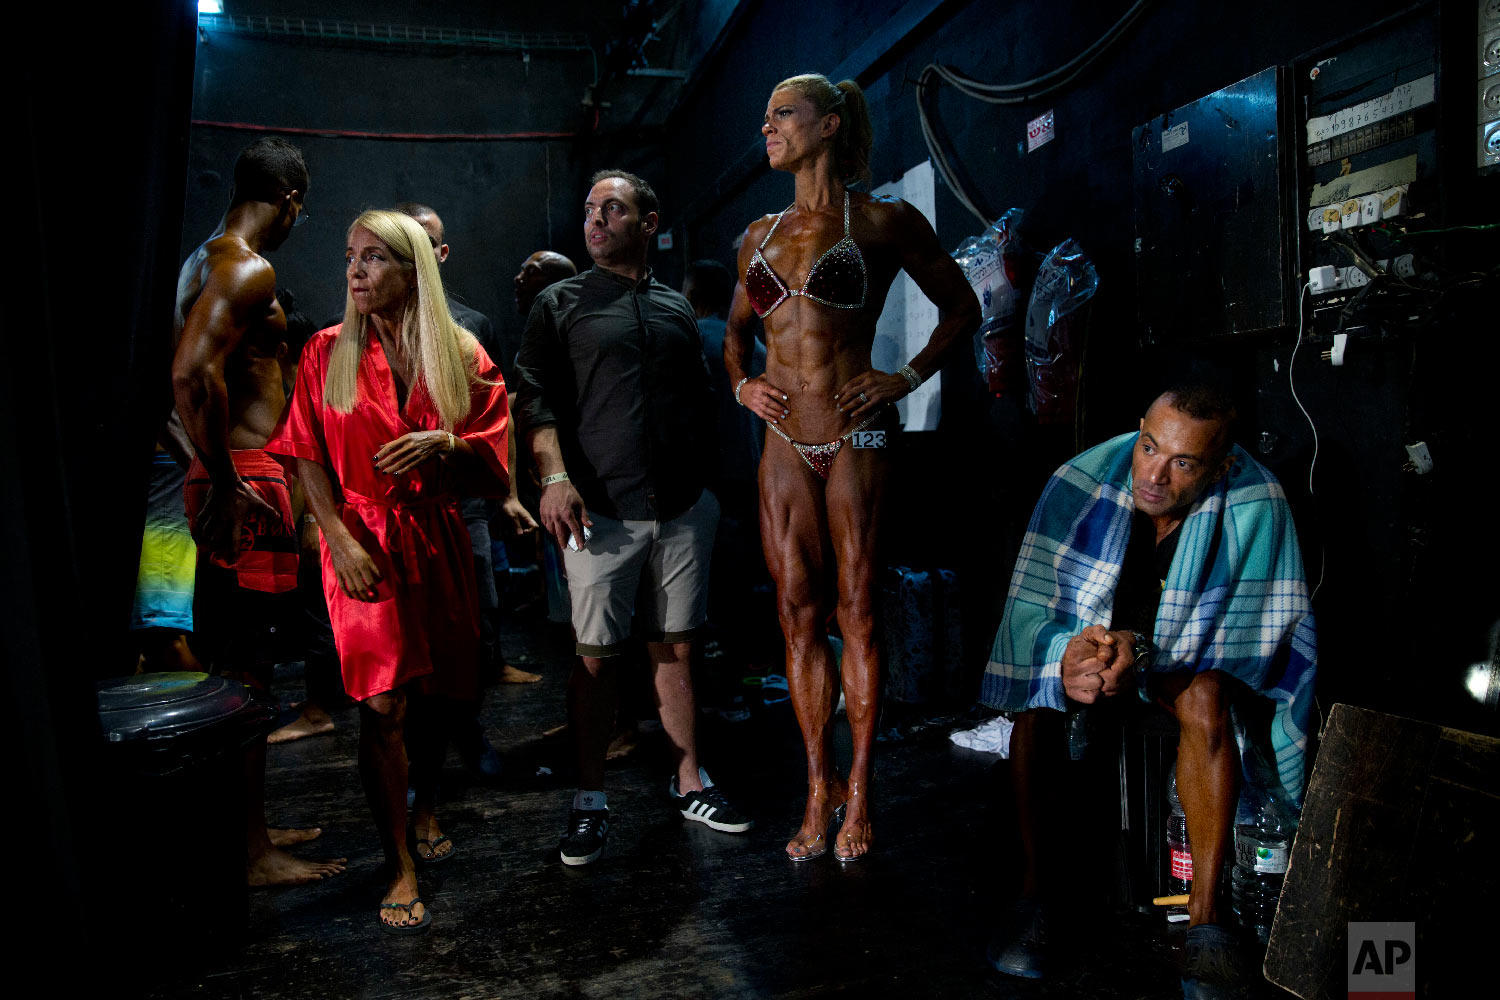 Contestants wait for their performance backstage during the National Amateur Body Builders' Association competition in Tel Aviv, Israel on Oct. 18, 2018. (AP Photo/Oded Balilty)